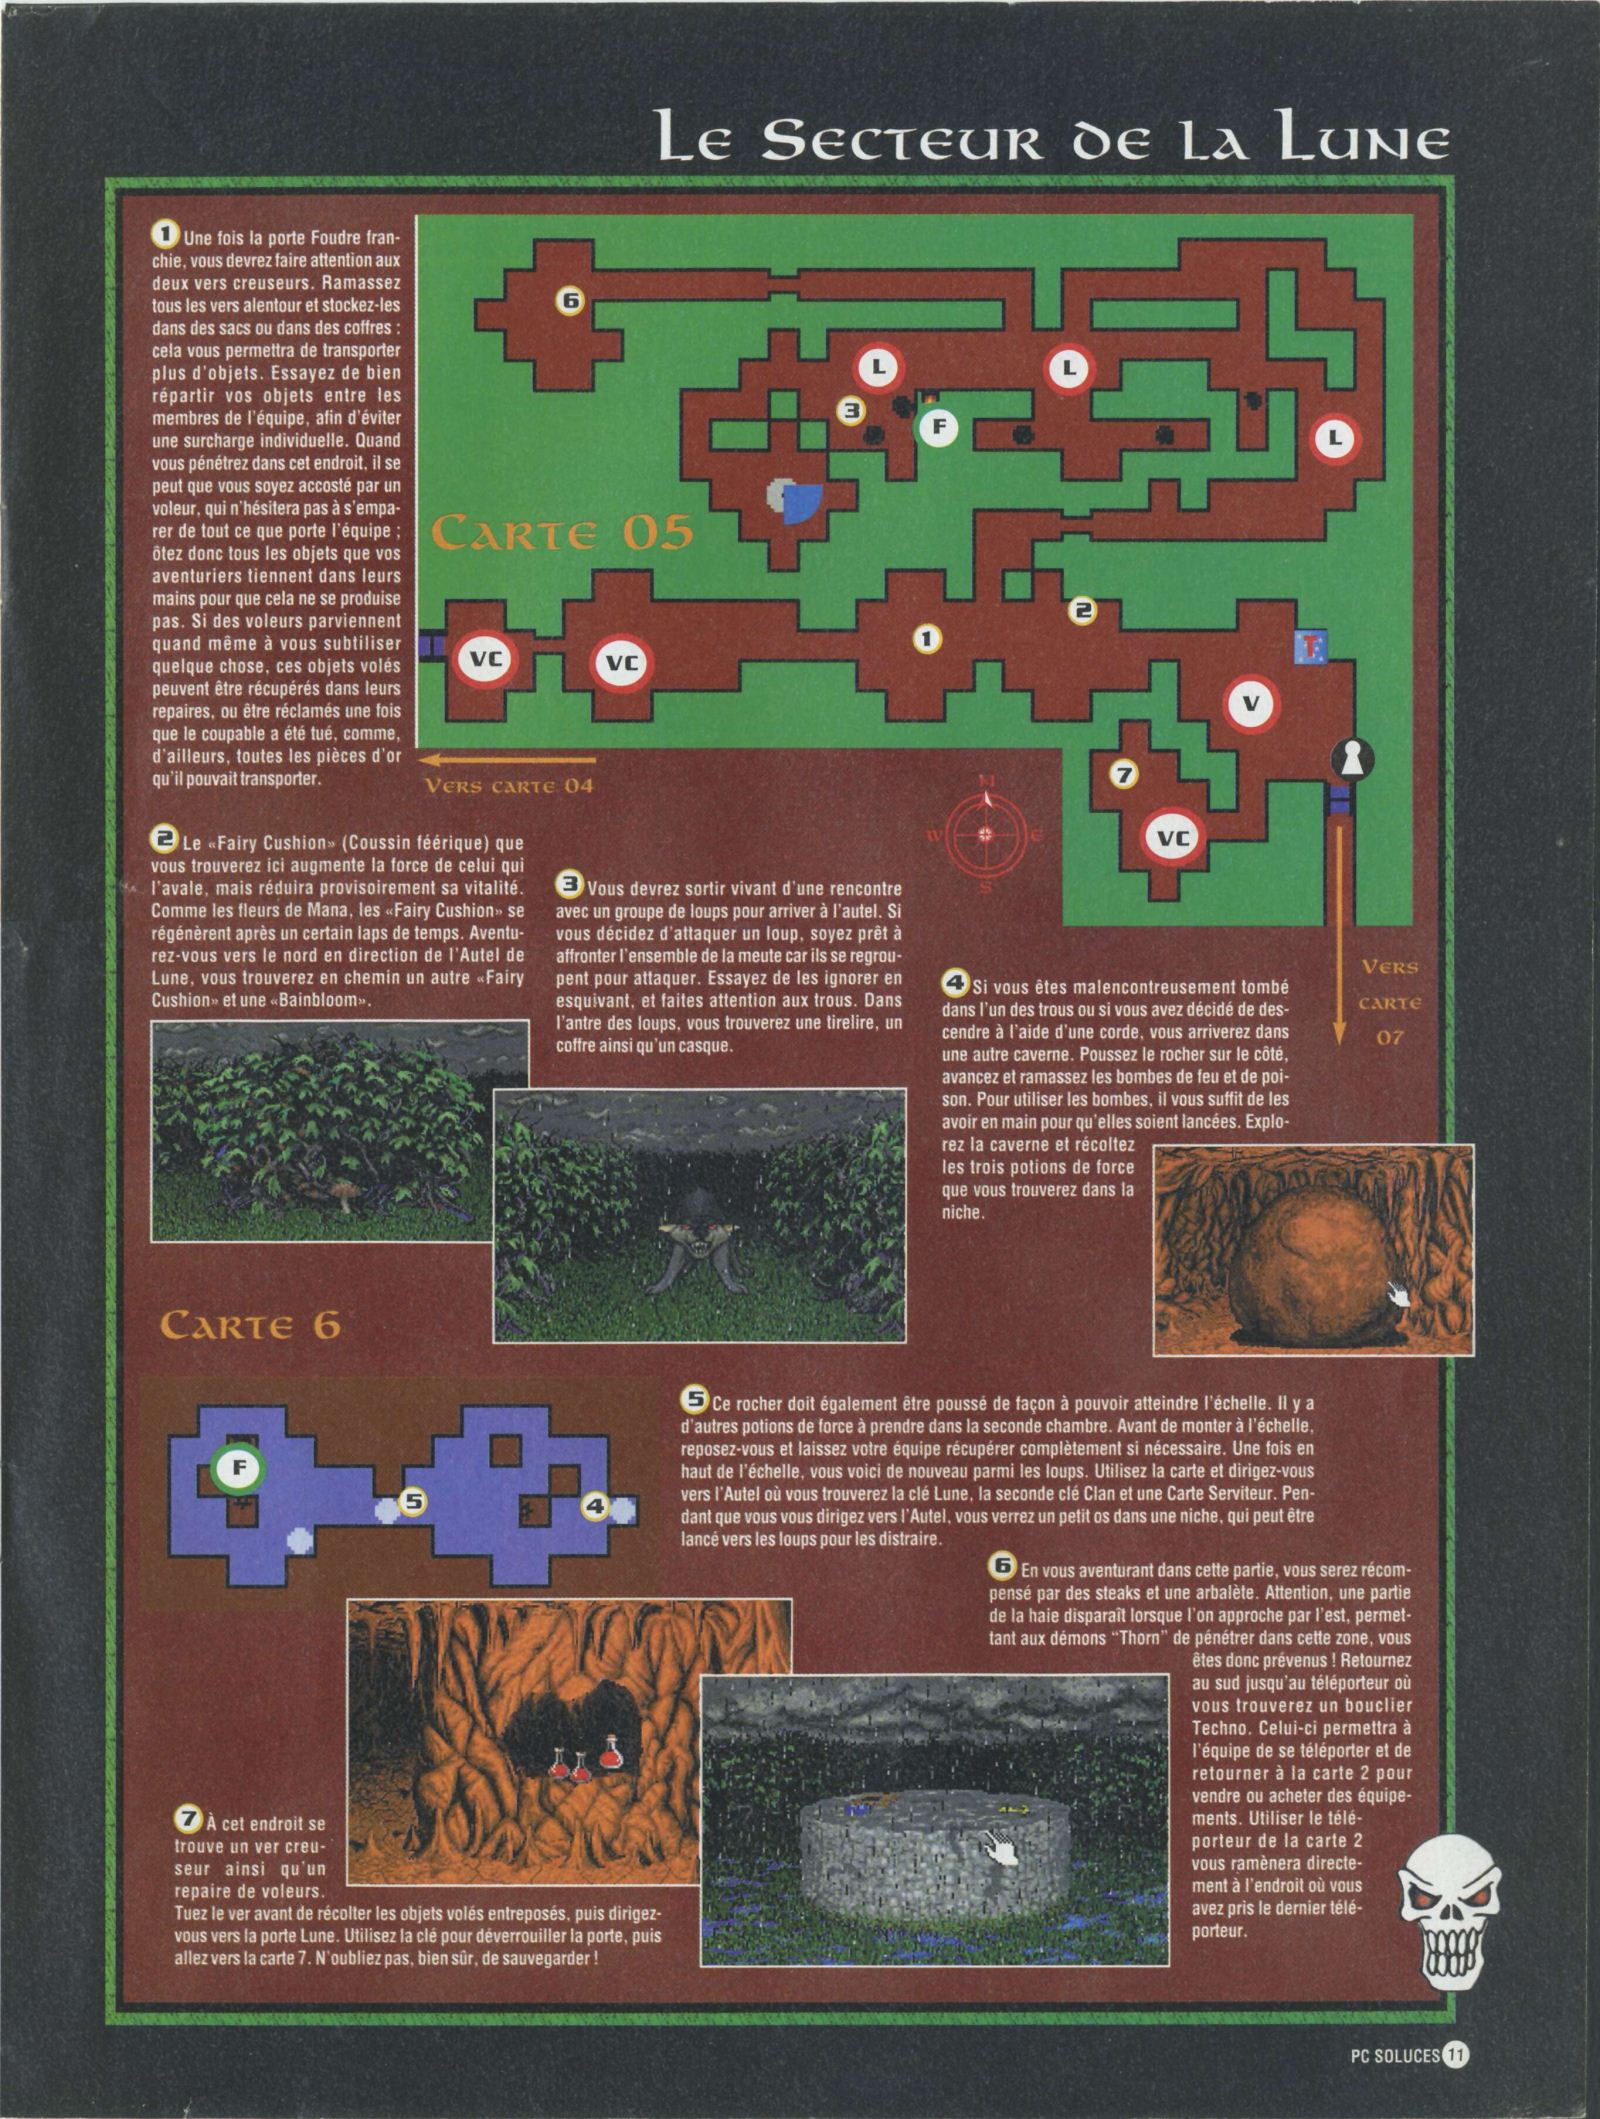 Dungeon Master II solution published in French magazine &amp;#039;PC Soluces&amp;#039;, Issue#1, February-March 1996, Page11